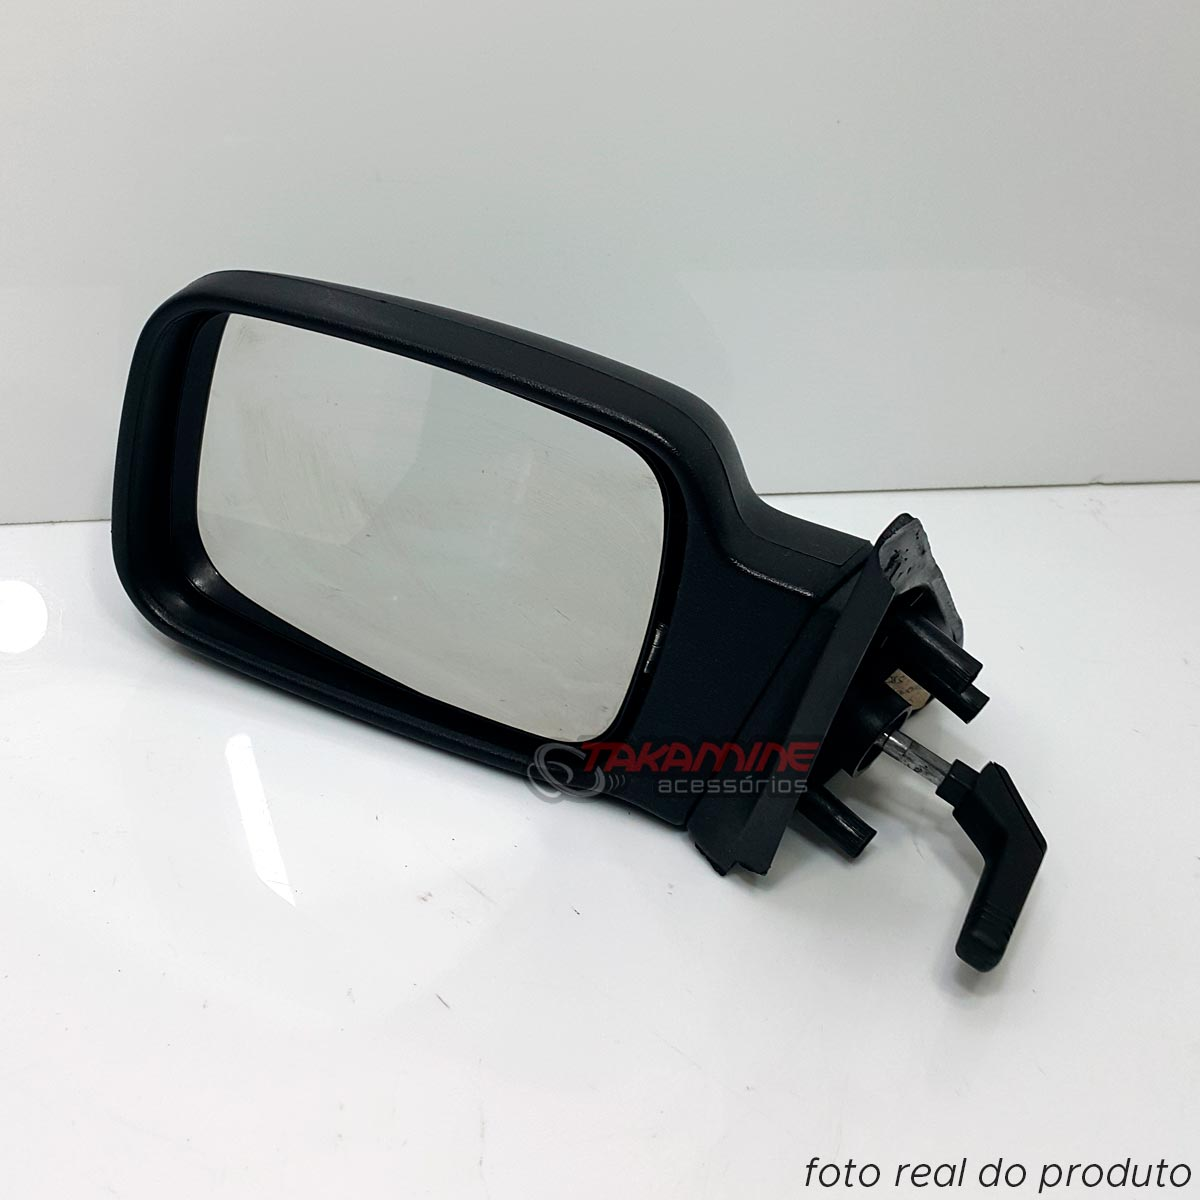 Retrovisor Escort 1987 1988 1989 1990 1991 1992 Apollo 1990 1991 1992 original com controle manual lado esquerdo